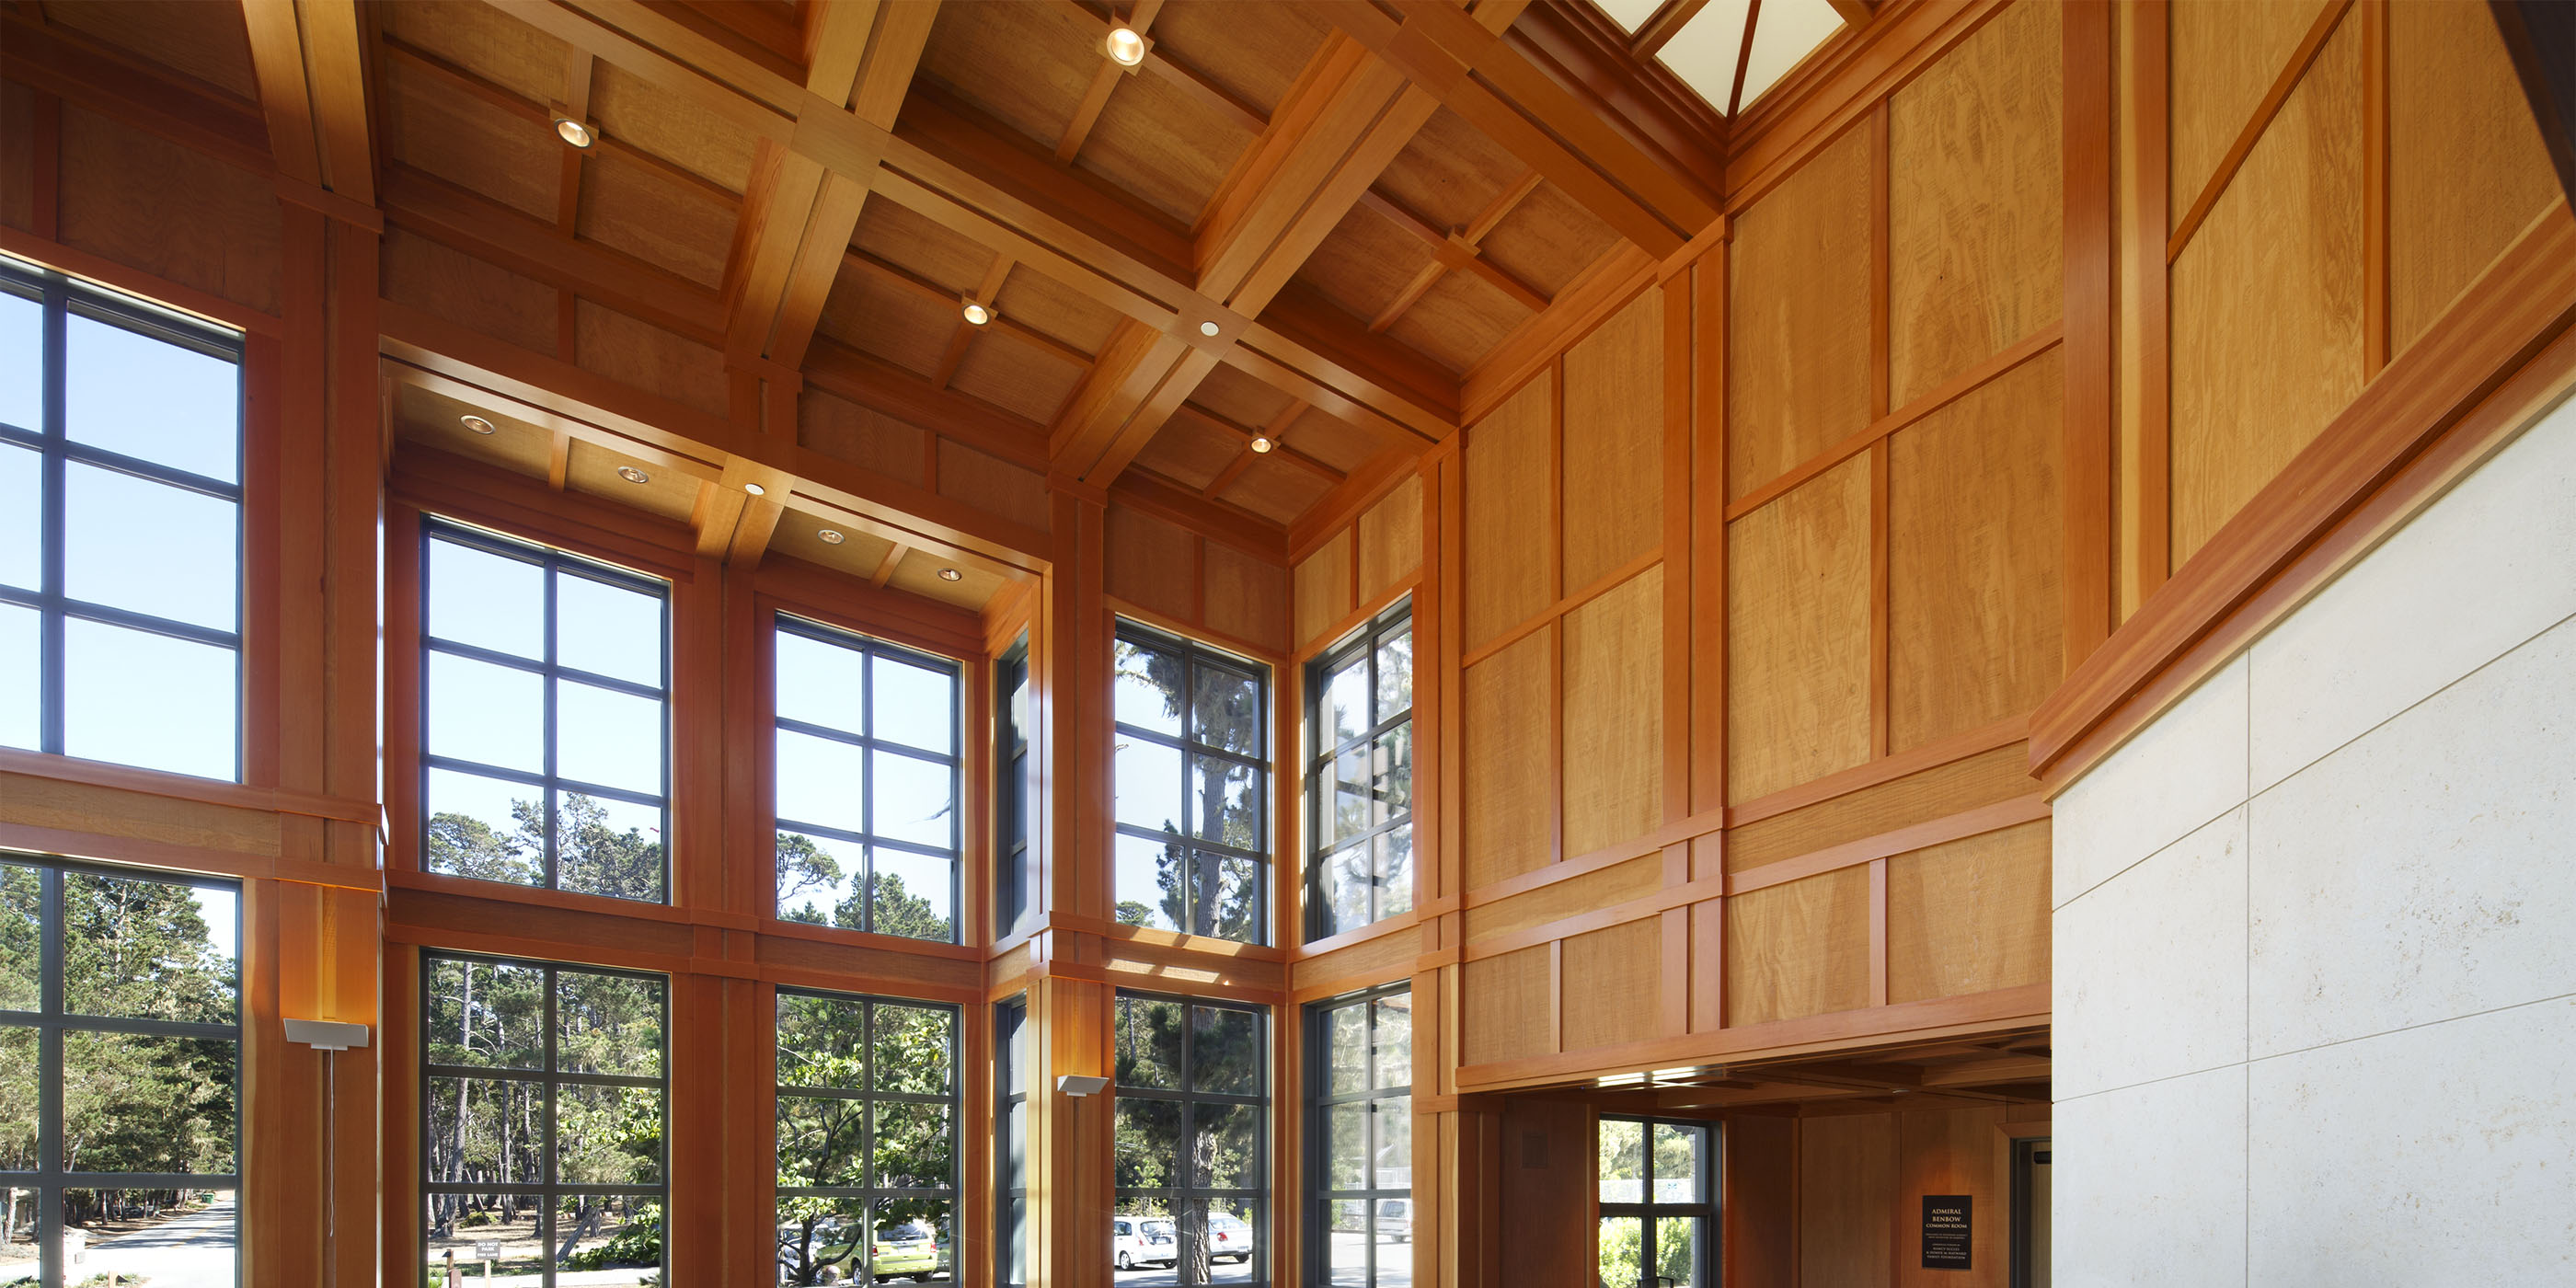 Casco - Commercial Architectural Millwork - Northern California